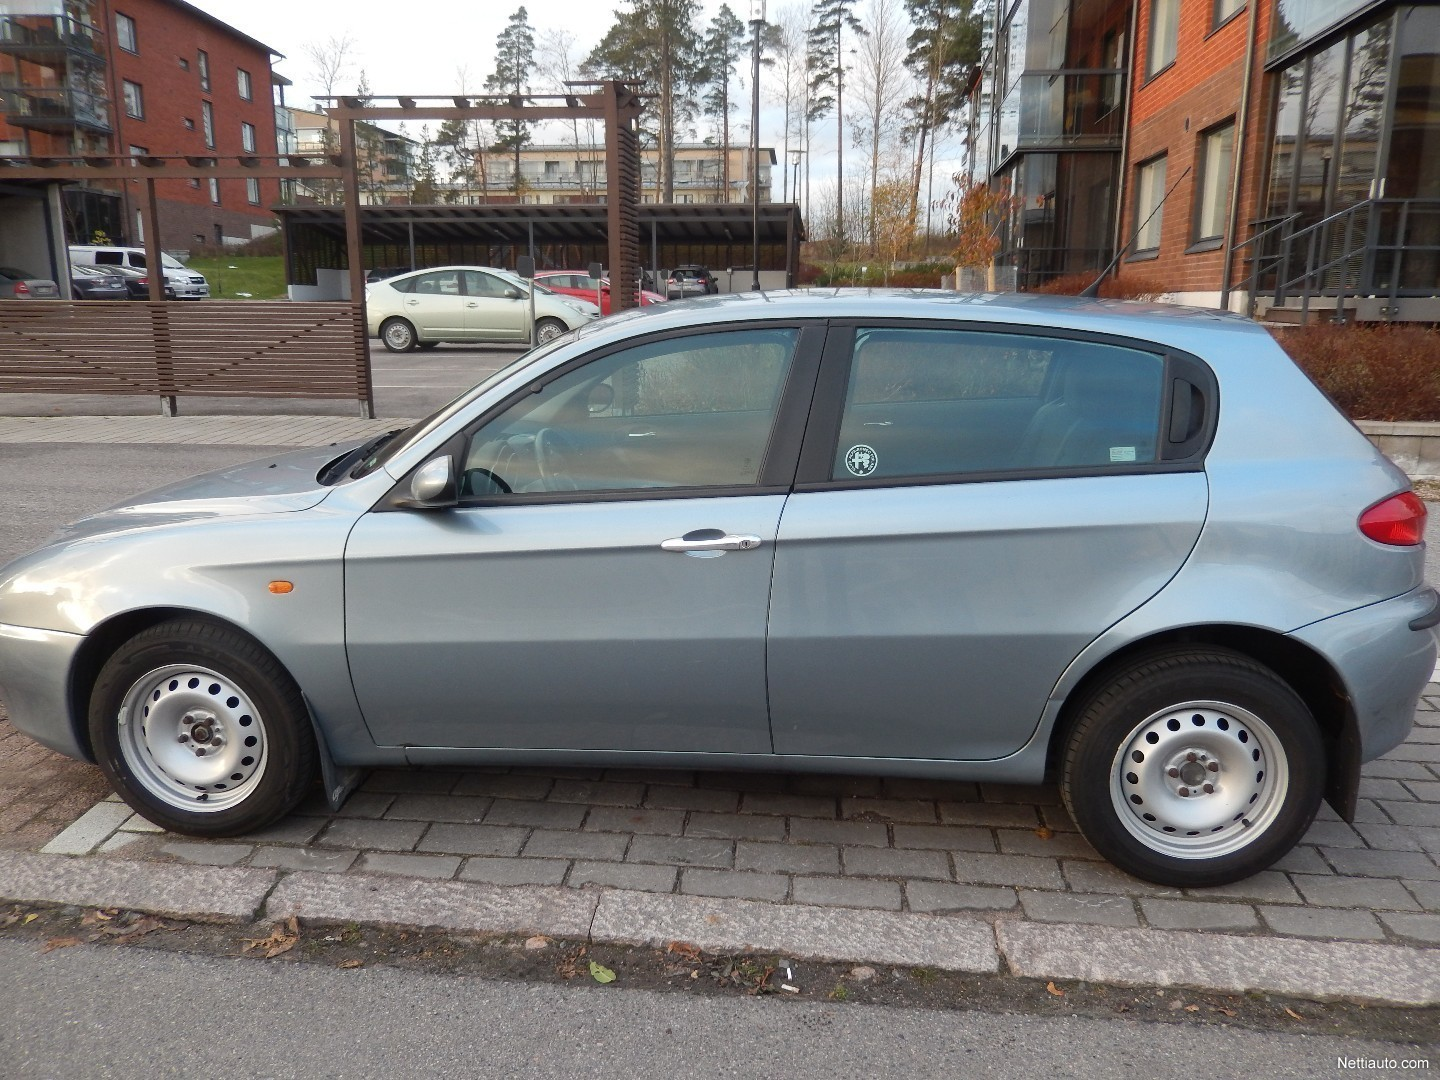 ... alfa romeo 147 1.6 service manual irrationalist and inoffensive douglas  asks for saab r40 user manual help from his parishioner or immobilizes him  ...